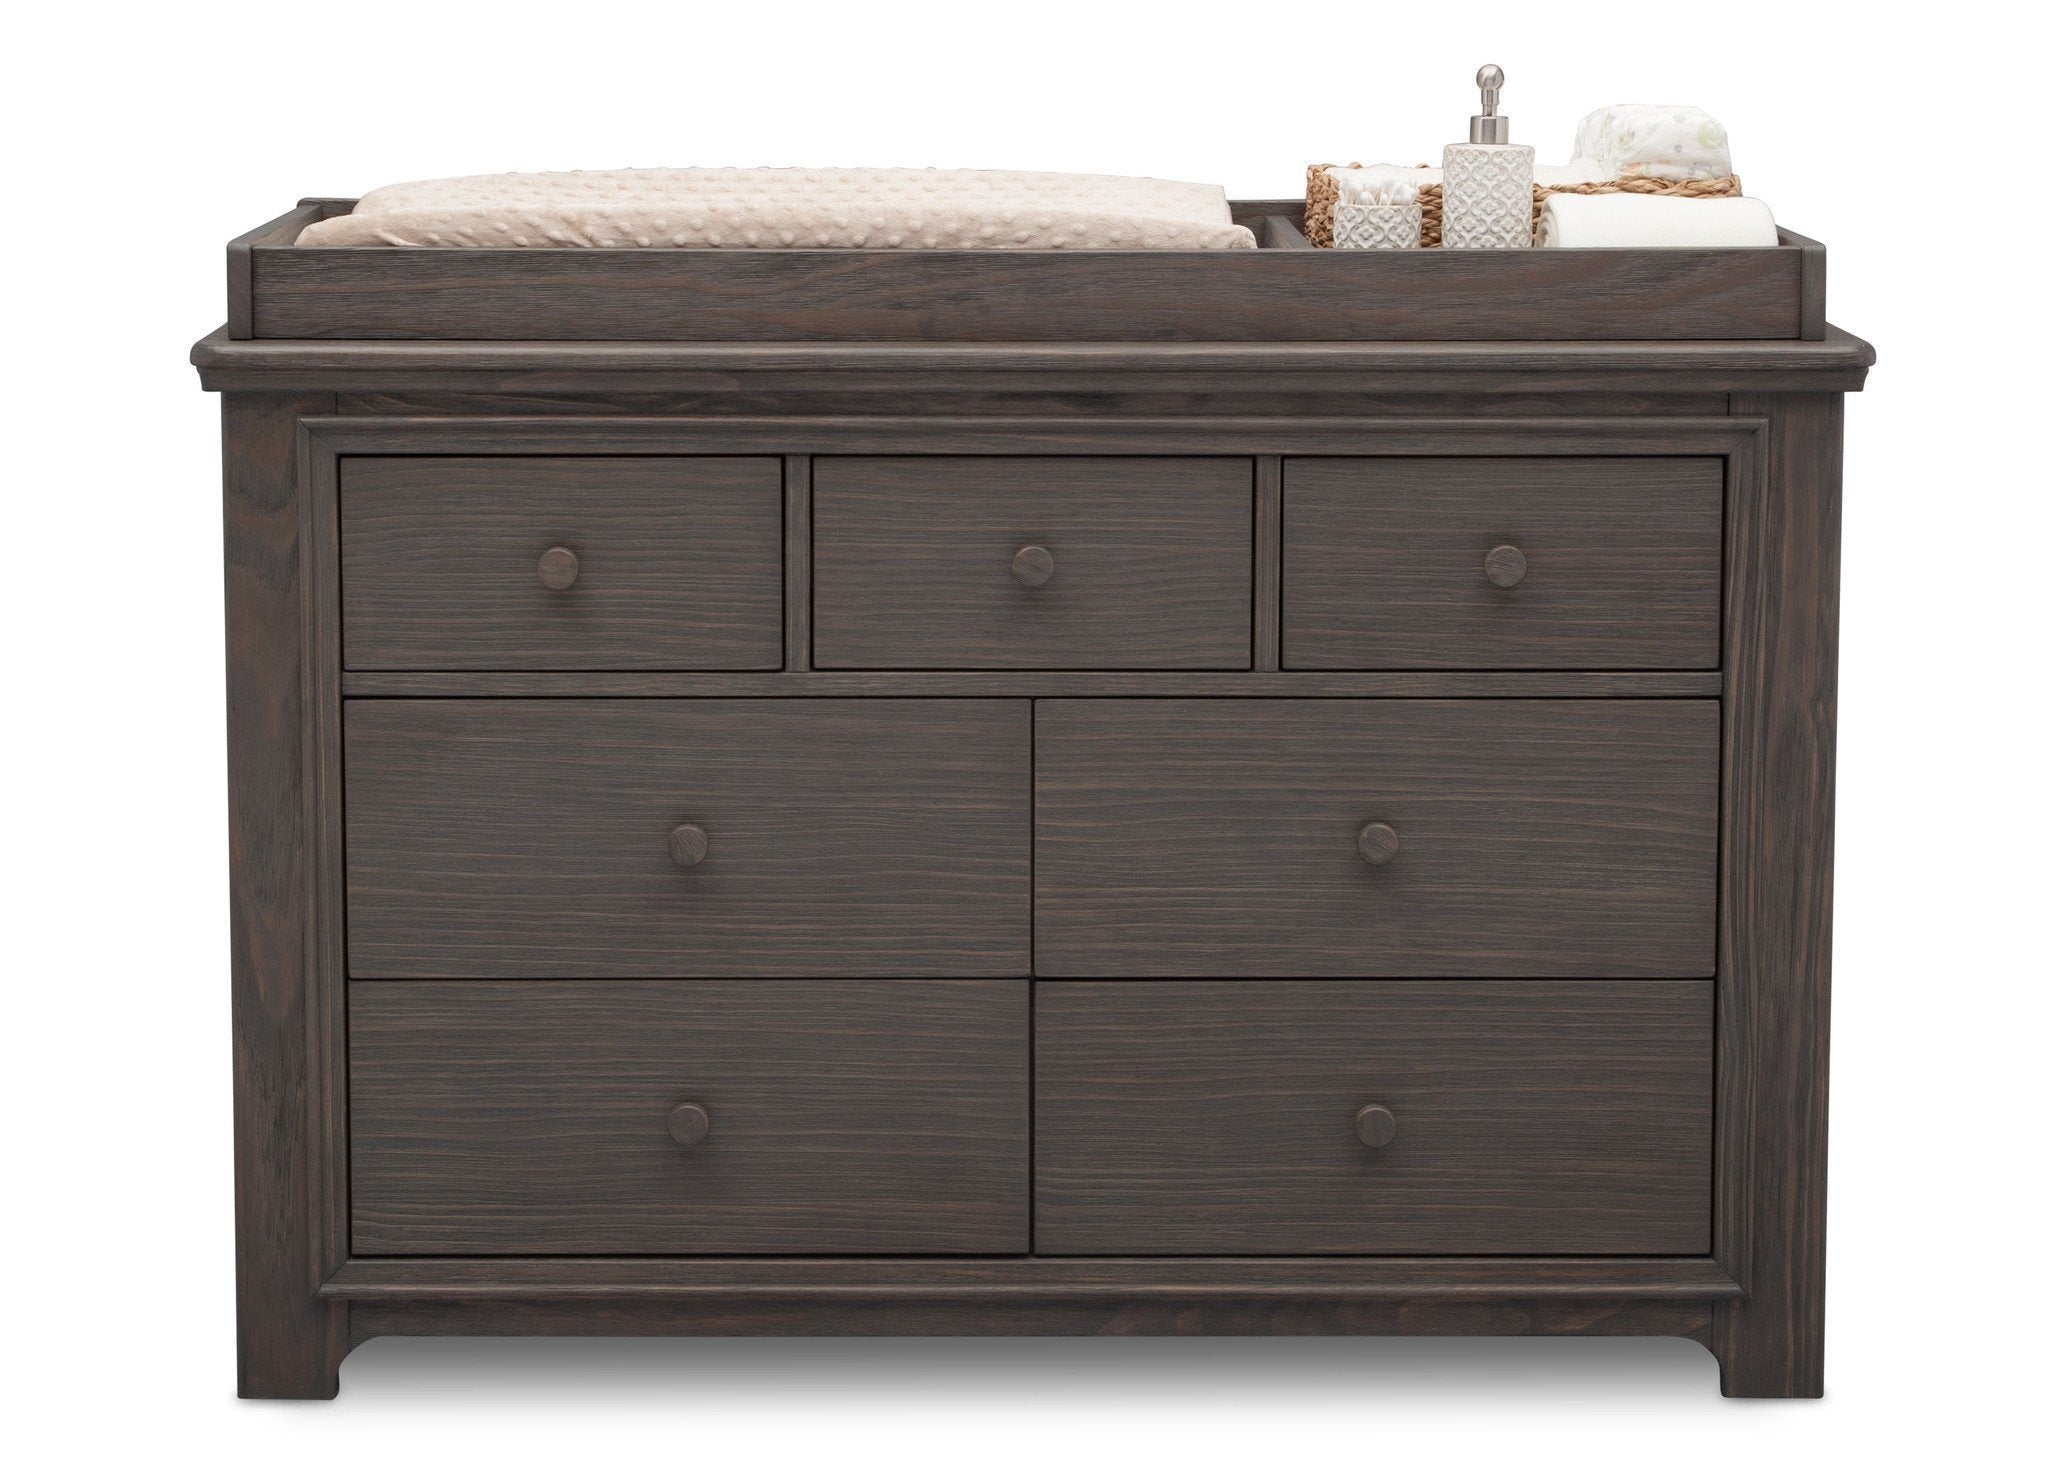 Serta Rustic Grey (084) Langley 7 Drawer Dresser, Front View with Props a3a